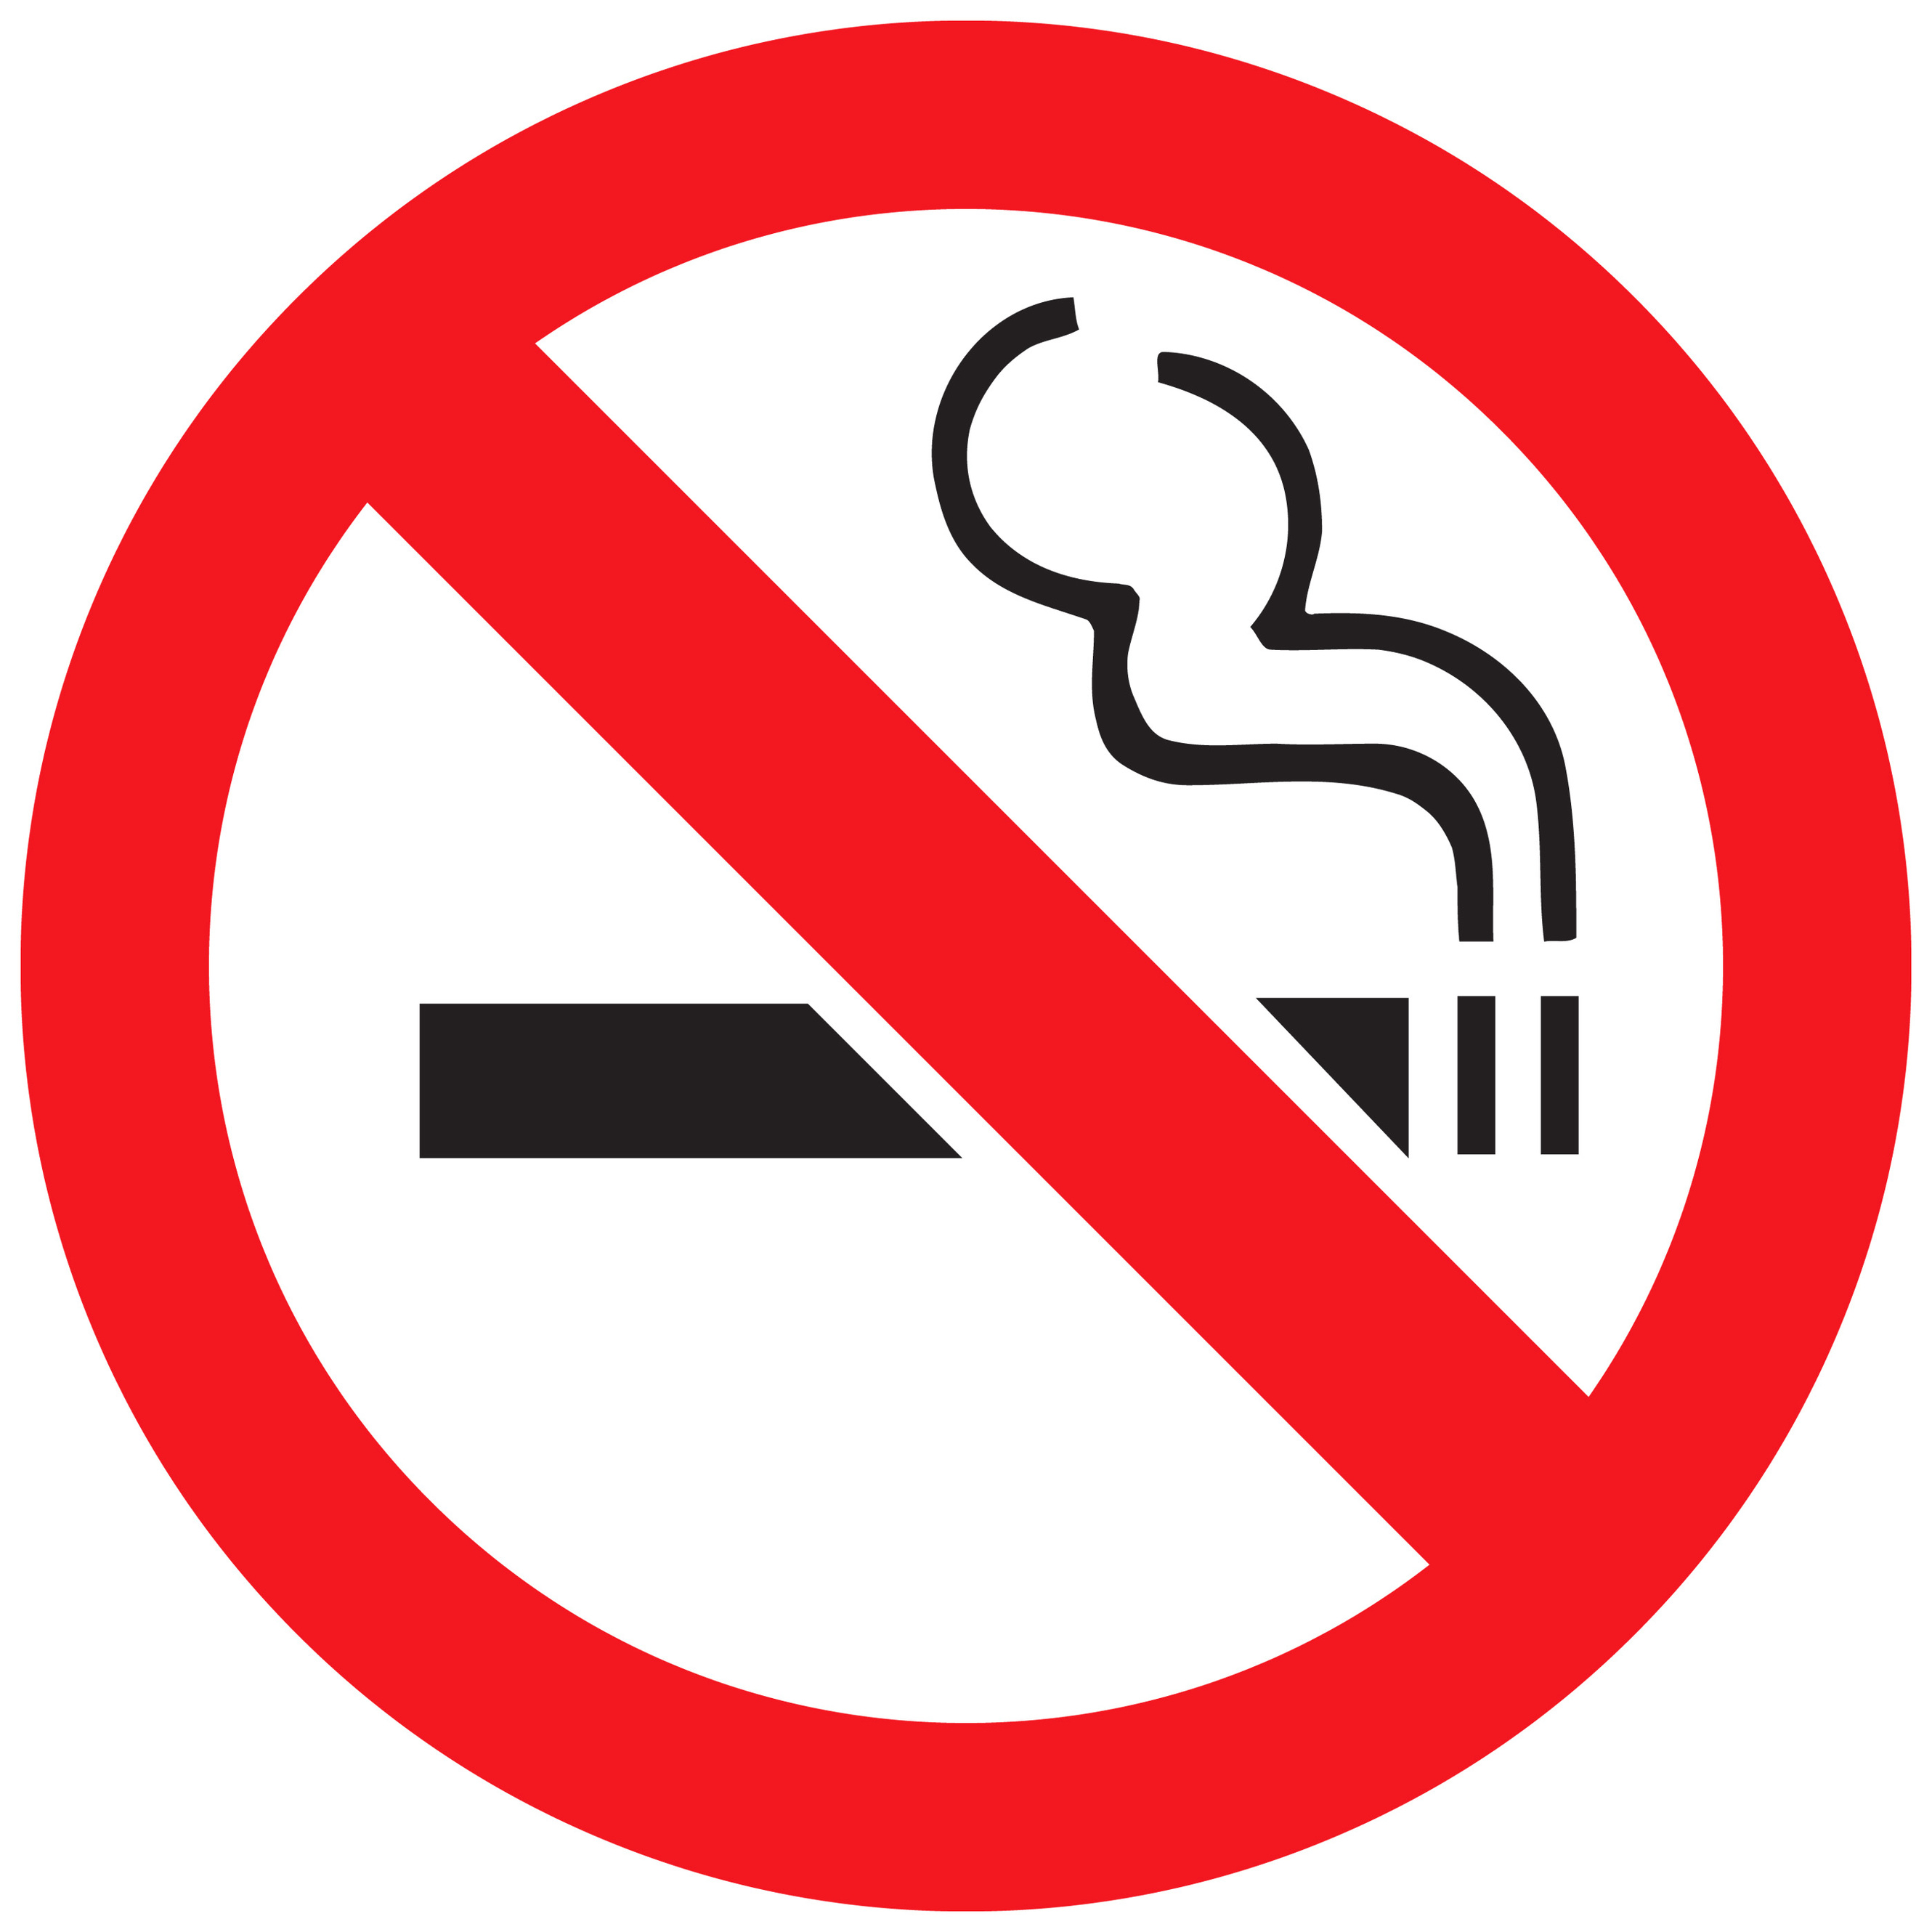 Logos For > No Smoking Logo Png Clipart - Free to use Clip Art ...